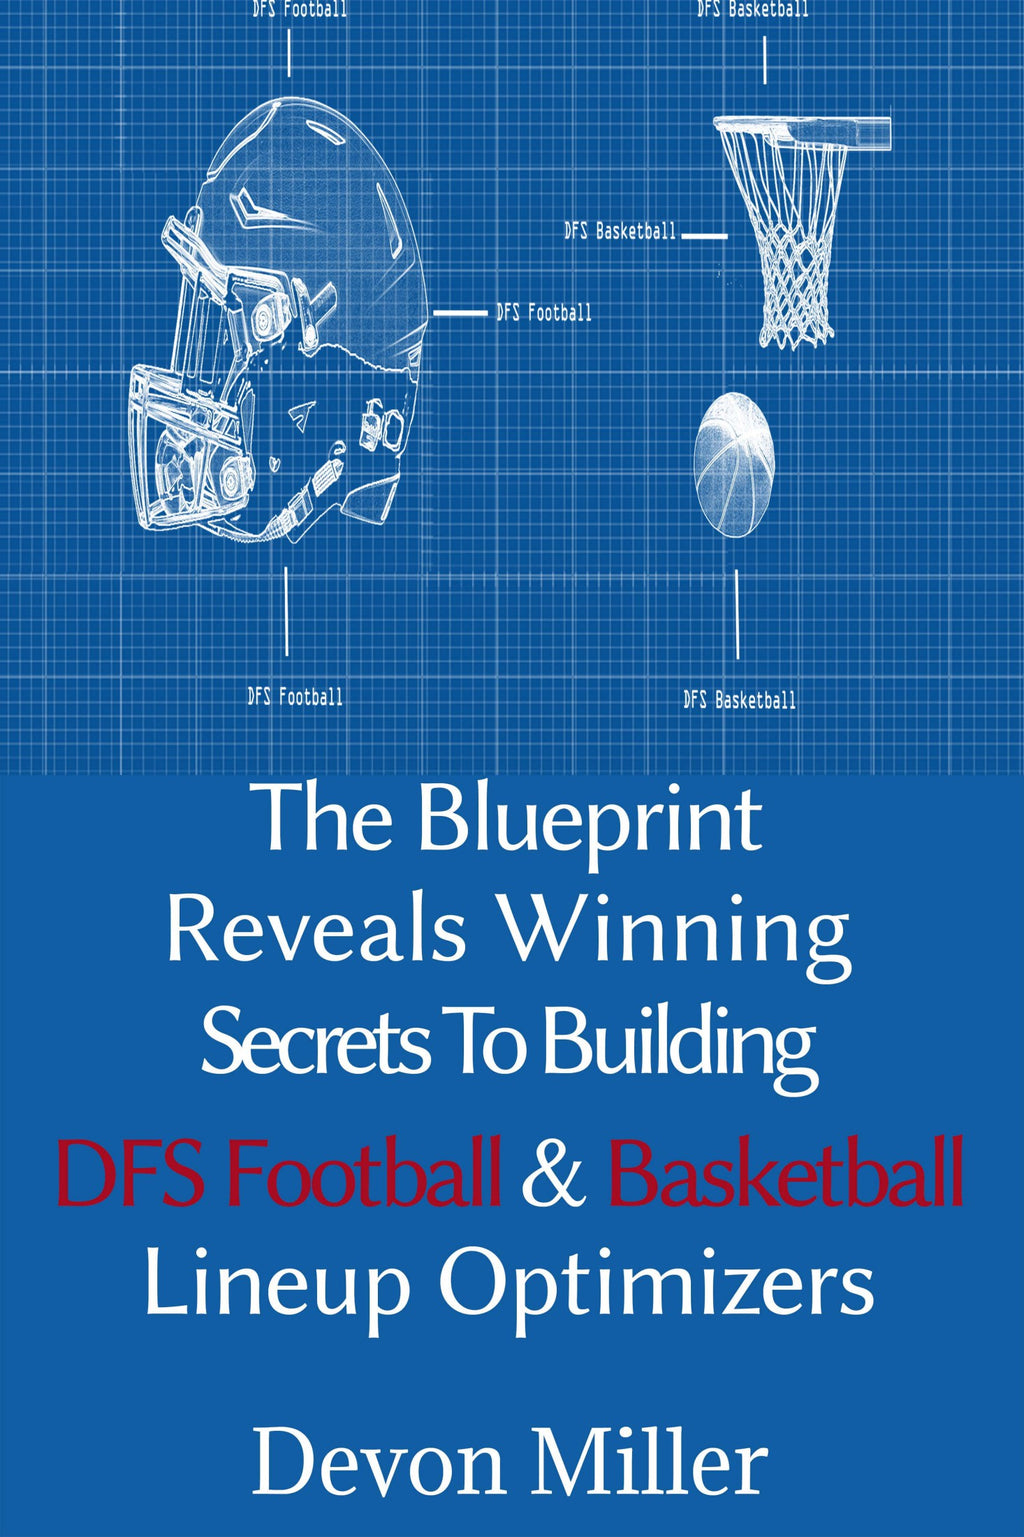 The Blueprint Reveals Winning Secrets to Building DFS Football & Basketball Lineup Optimizers